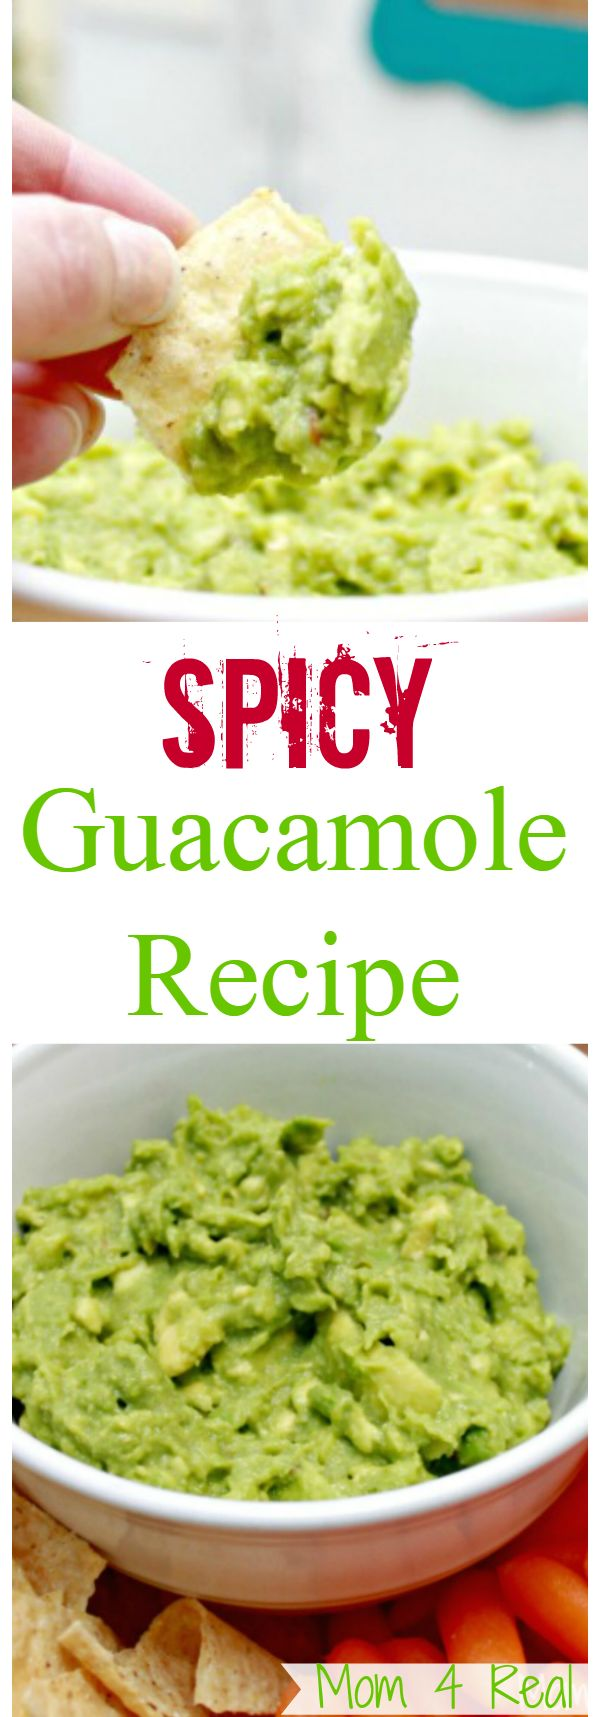 Super Fresh Spicy Guacamole Recipe - More Recipes and Appetizer Ideas at Mom 4 Real